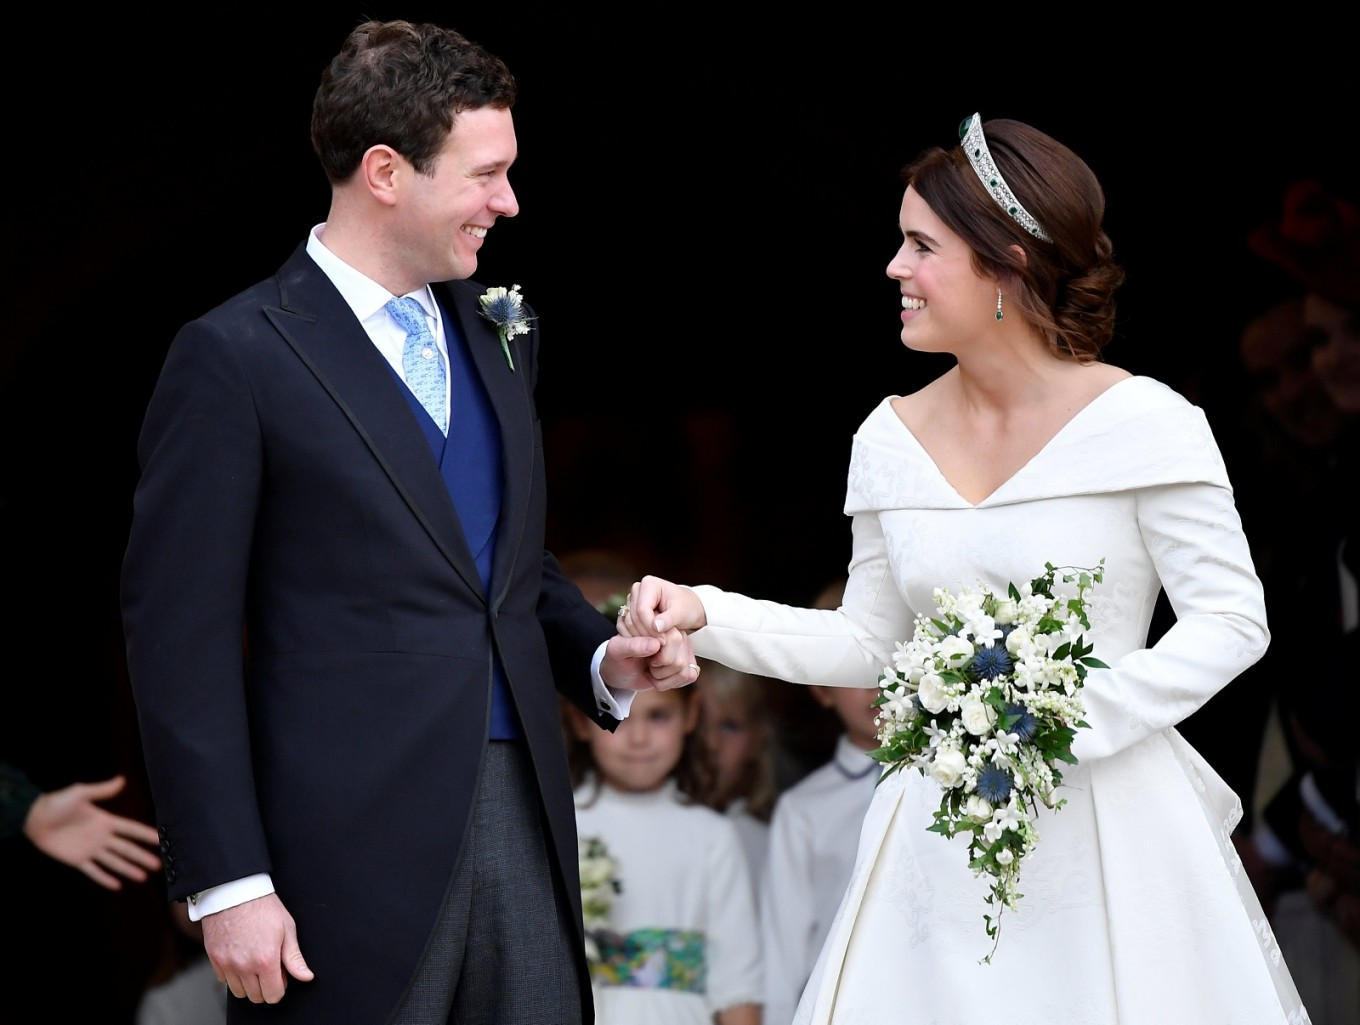 Princess Eugenie Pregnant: Harry & William's Cousin Expecting 1st Child With Husband